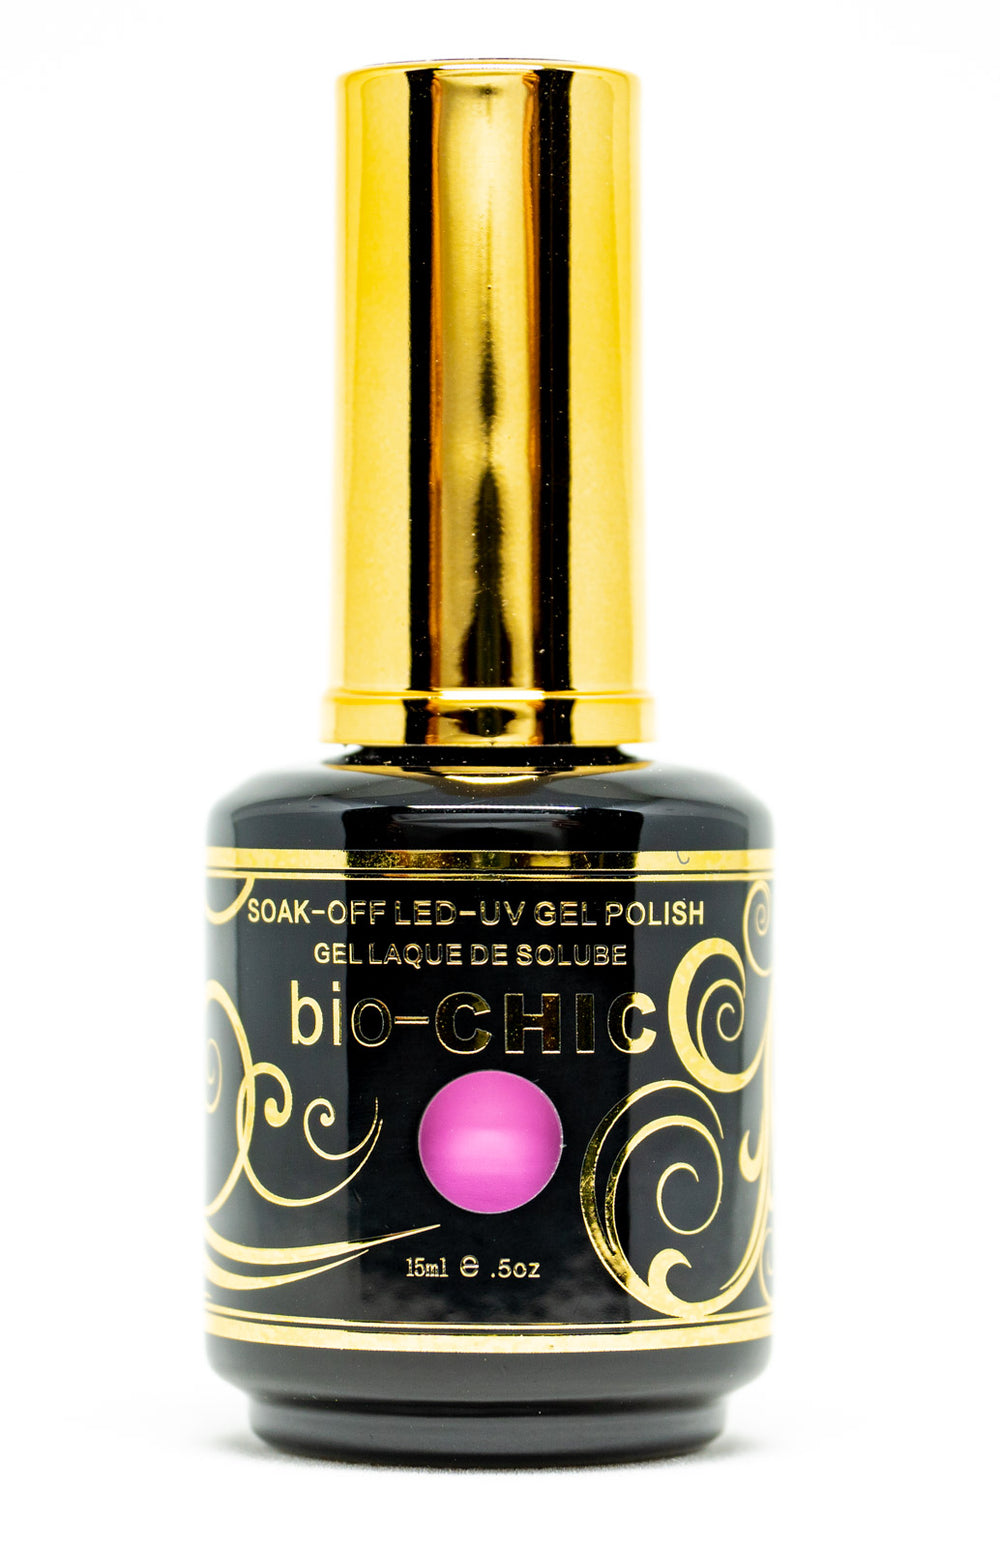 Bio-Chic Gel Polish - #363